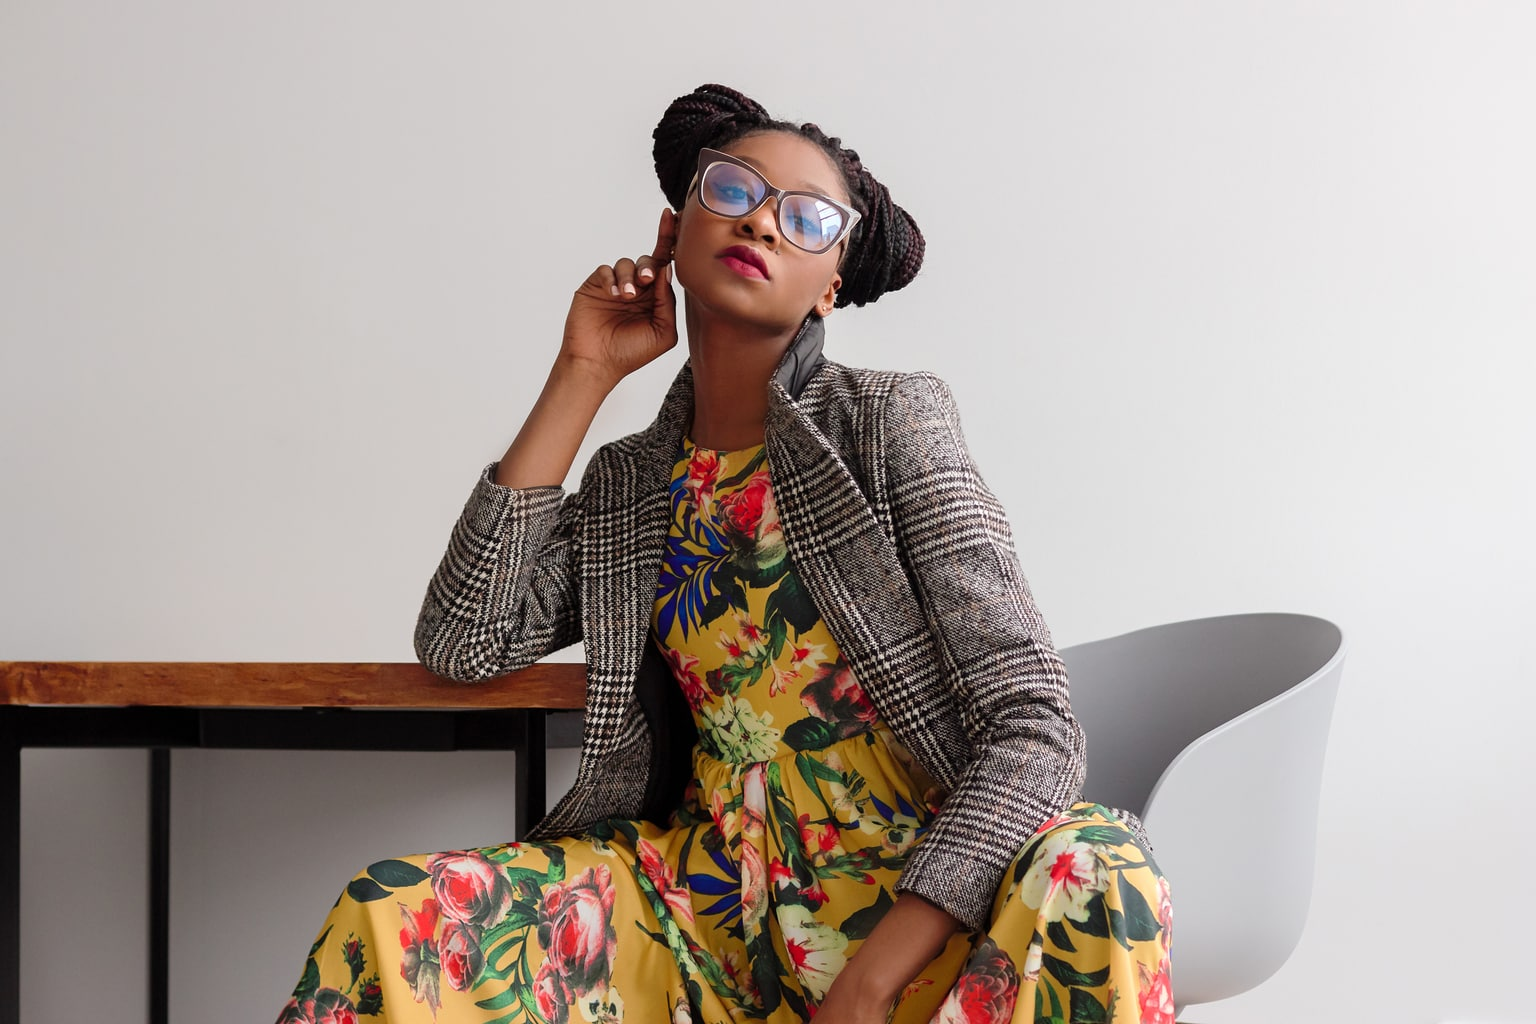 Woman sitting at a table wearing glasses, a long yellow floral dress, and a gray plaid blazer